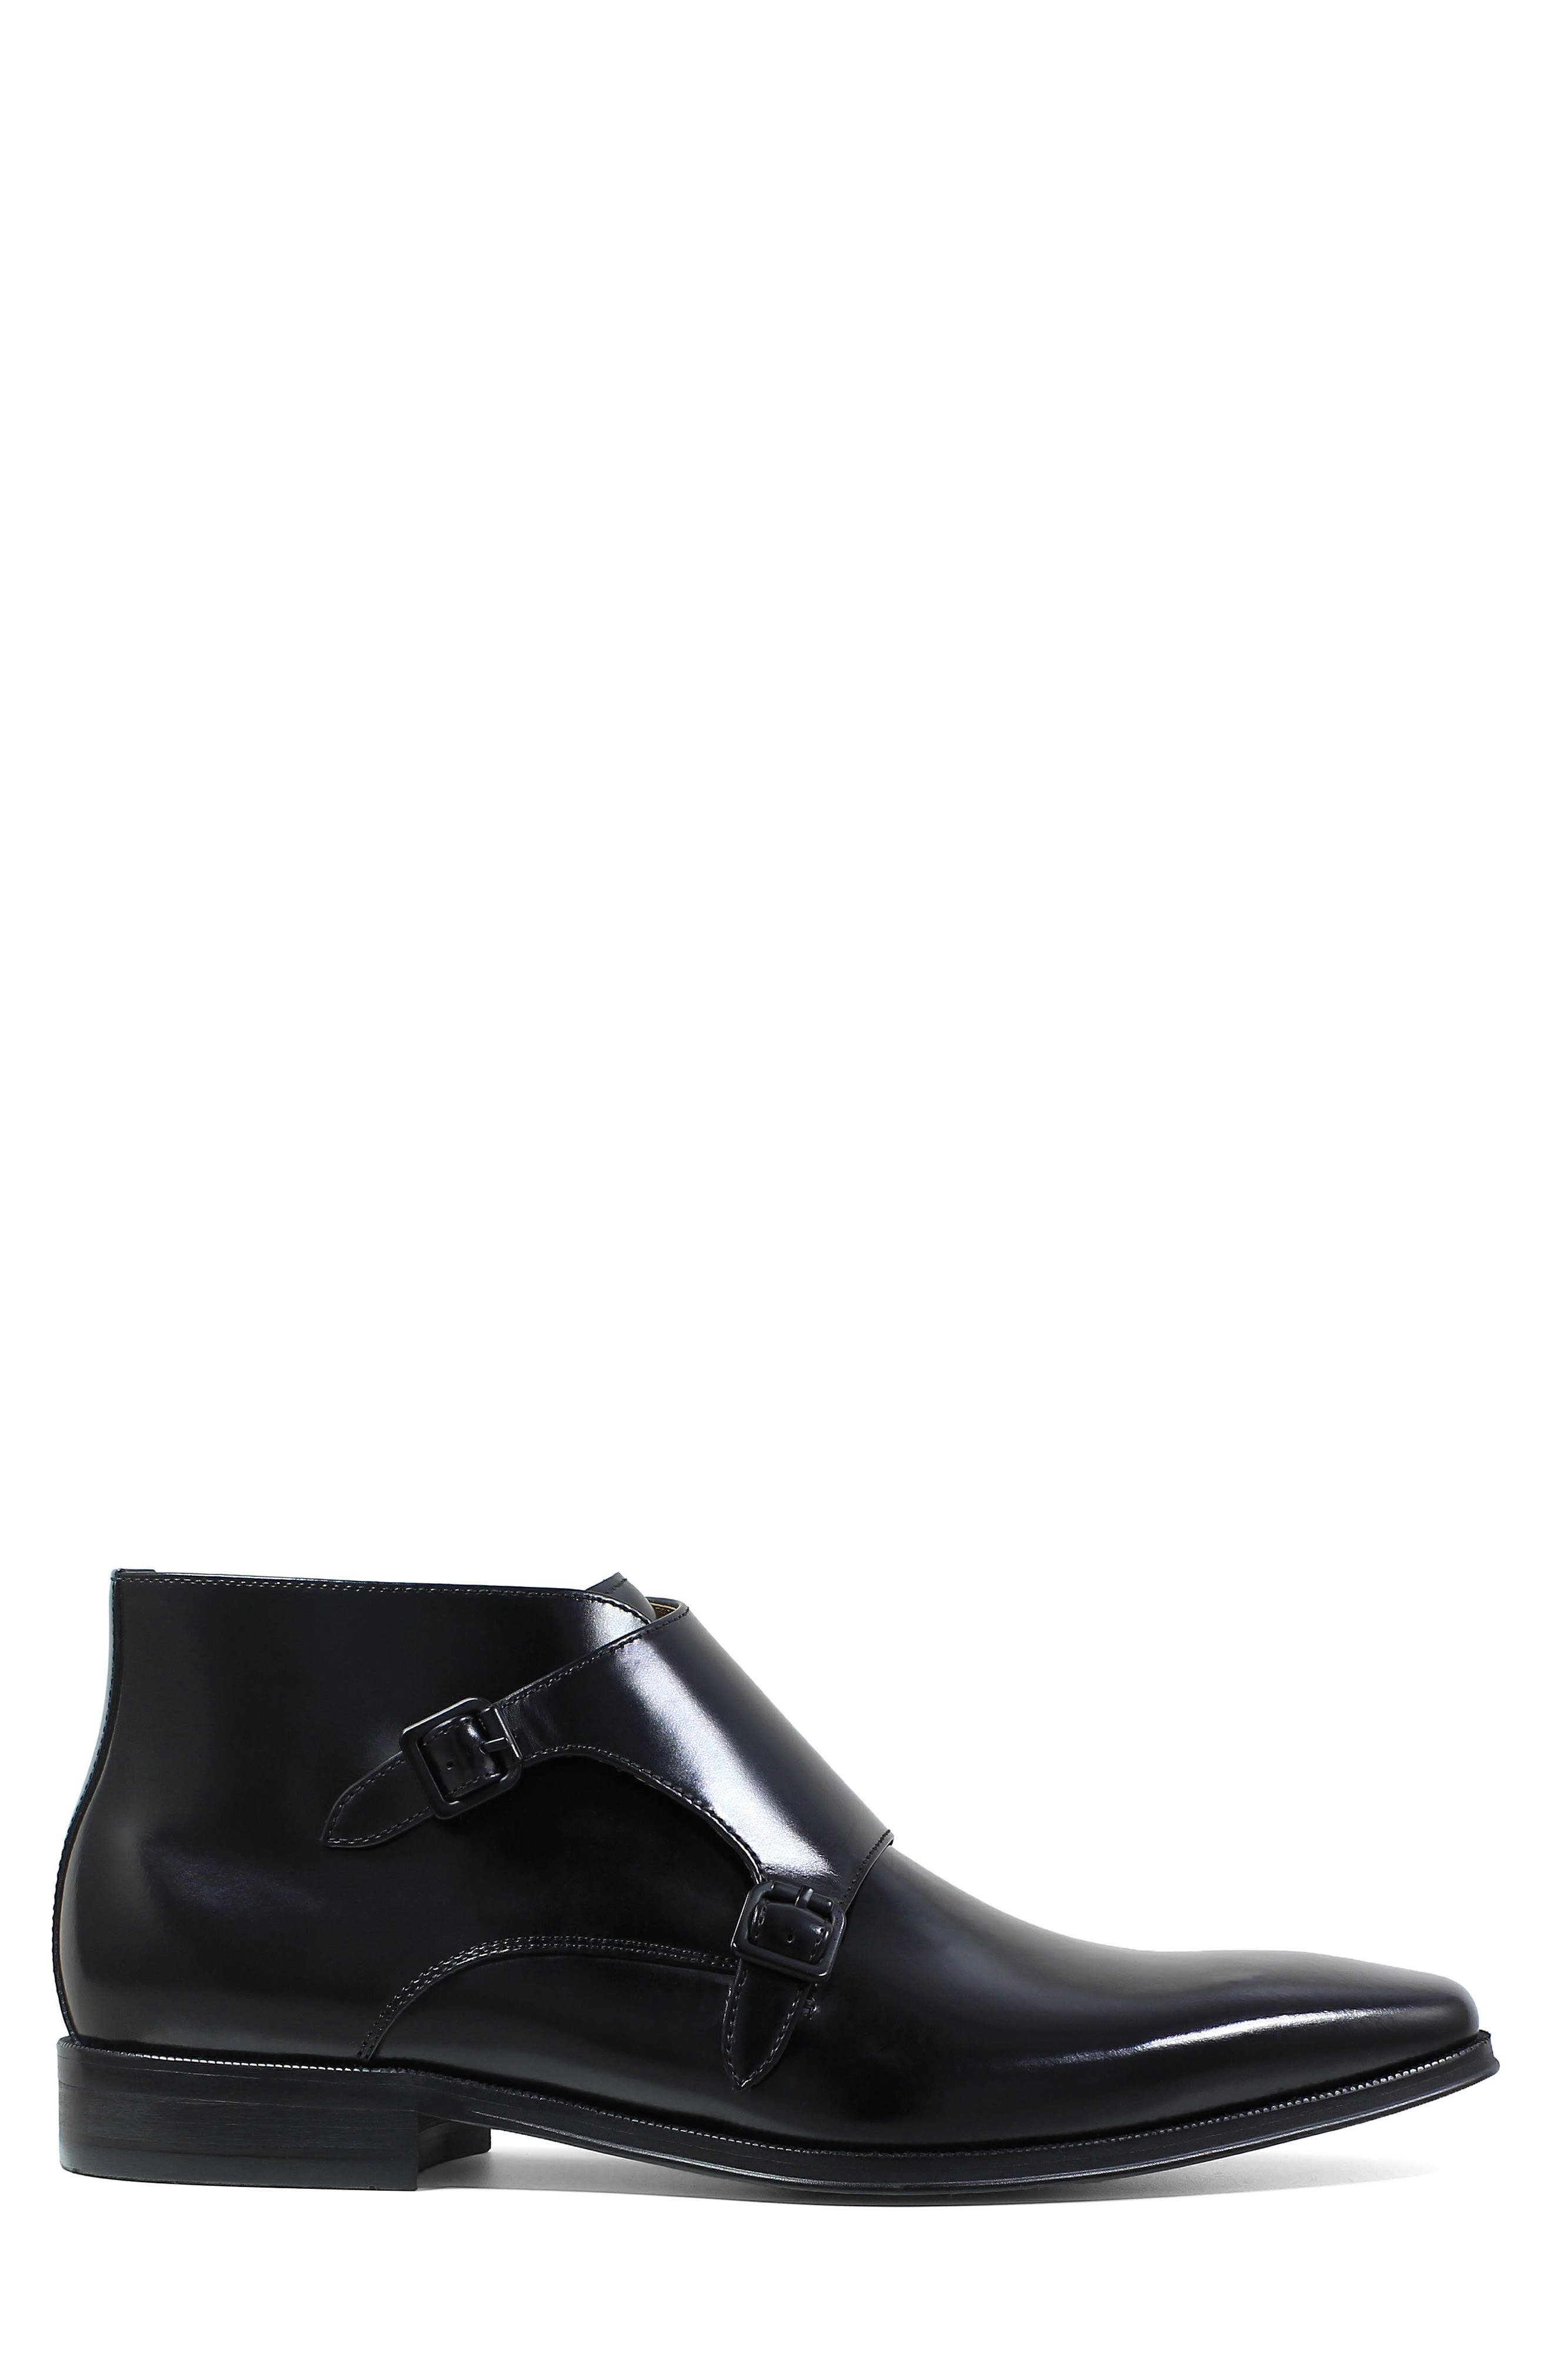 Belfast Double Monk Strap Boot,                             Alternate thumbnail 5, color,